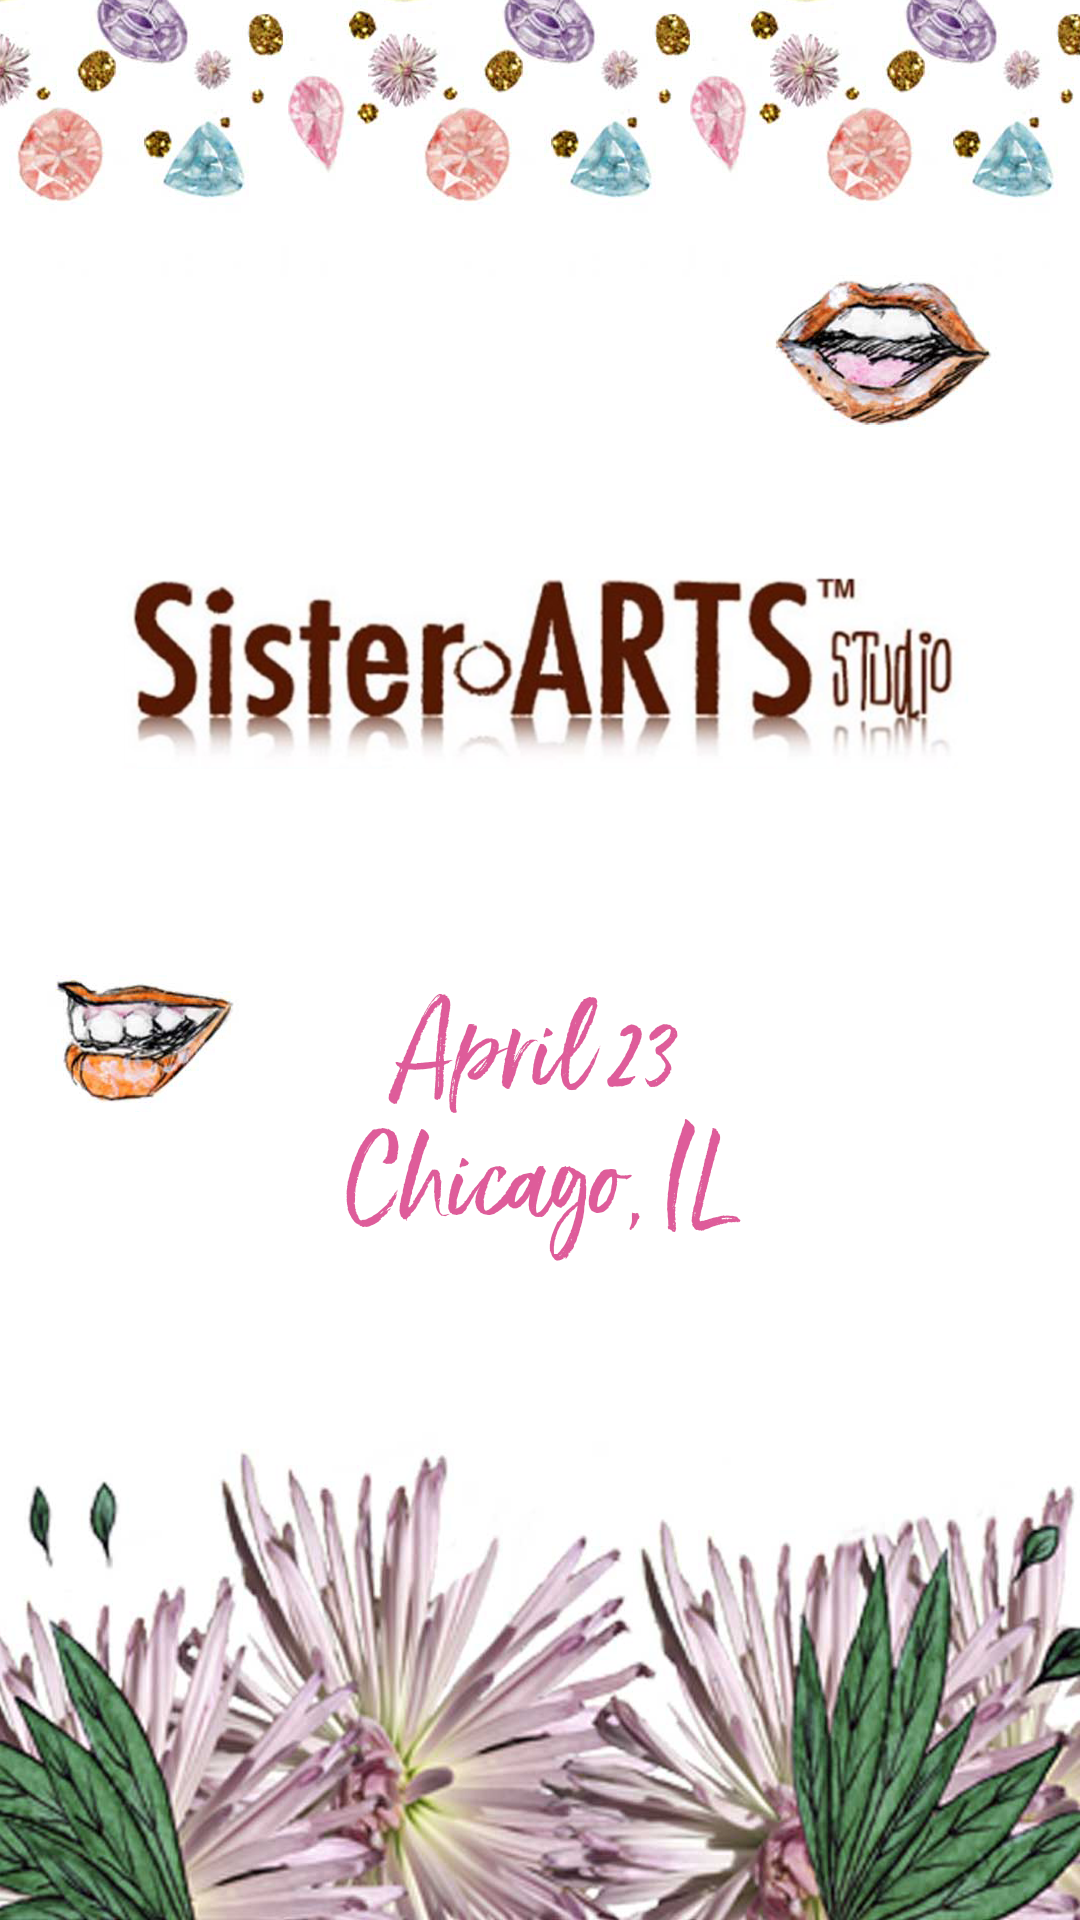 Book Signing at Sister Arts Studio Chicago, IL